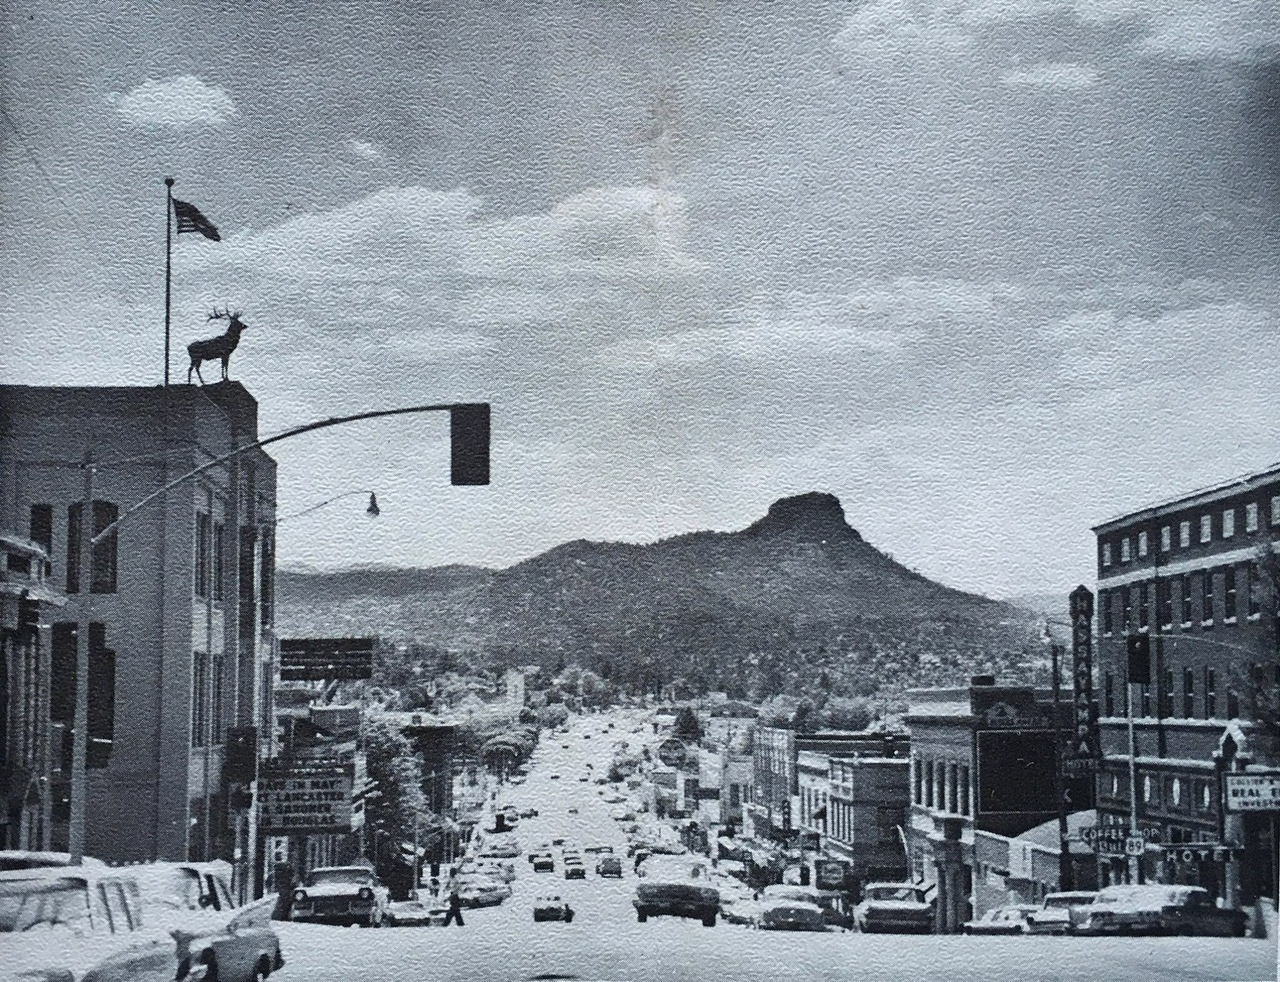 Historic Image of Downtown Prescott, AZ Donny Karcie, MBA RE/MAX Mountain Properties 731 W Gurley Street / Prescott, AZ 86305 (928) 899-4772 http://www.featureprescott.com